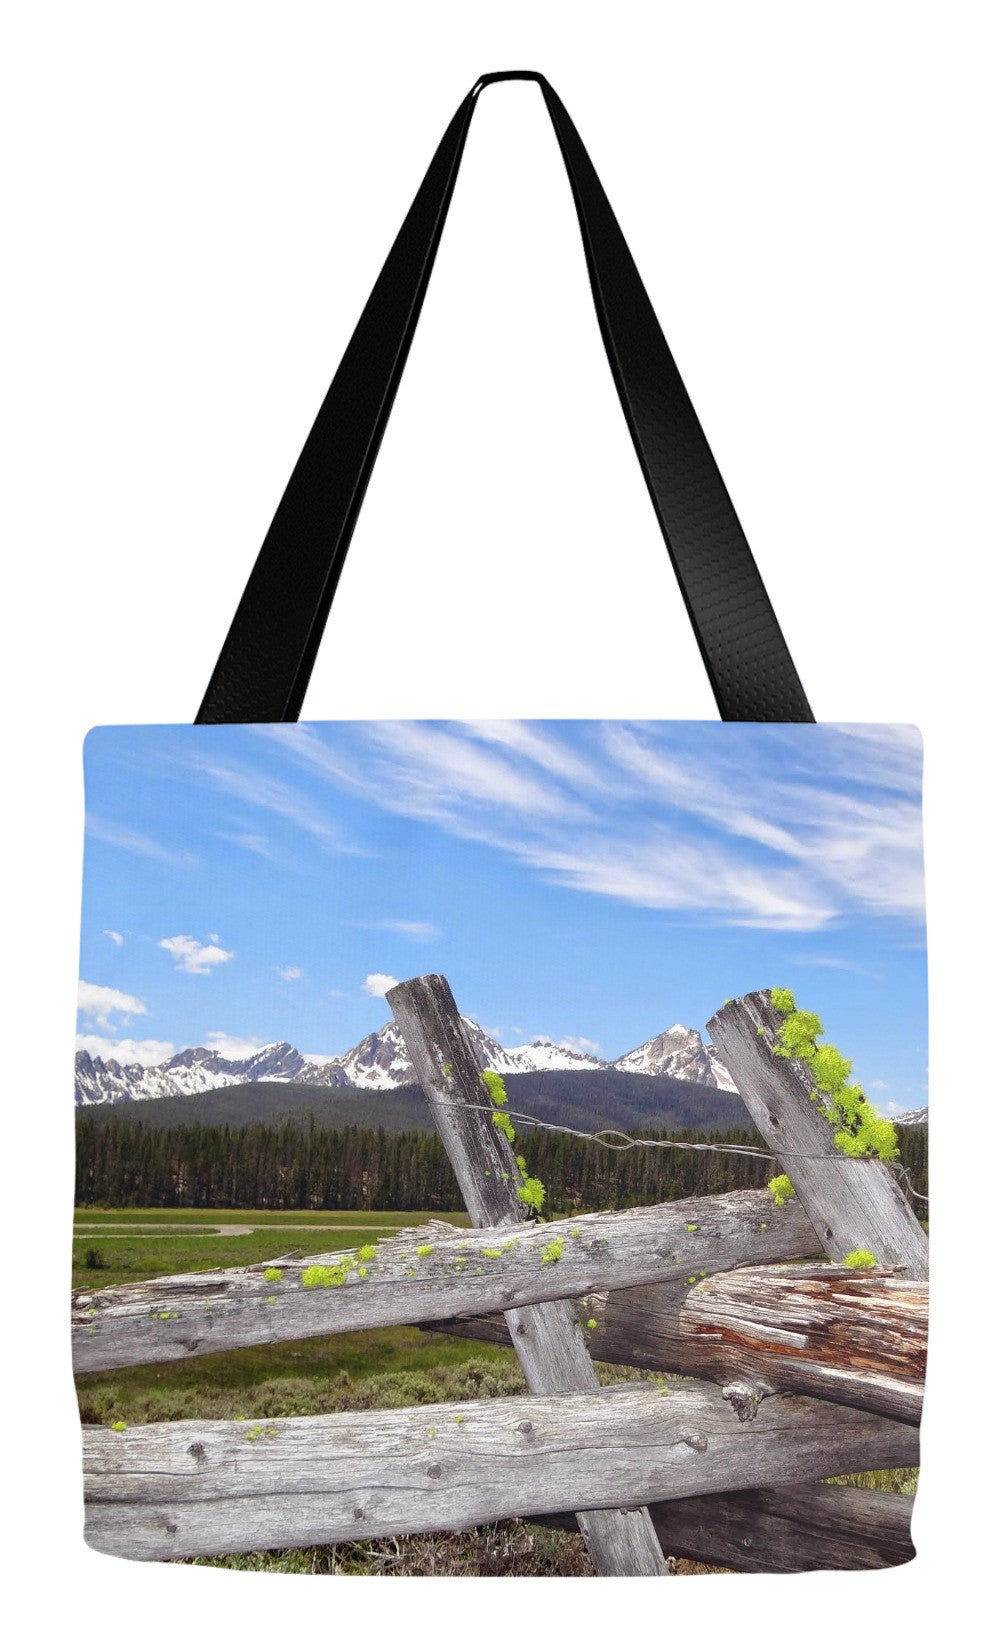 Tote Bag- Sawtooth Fence